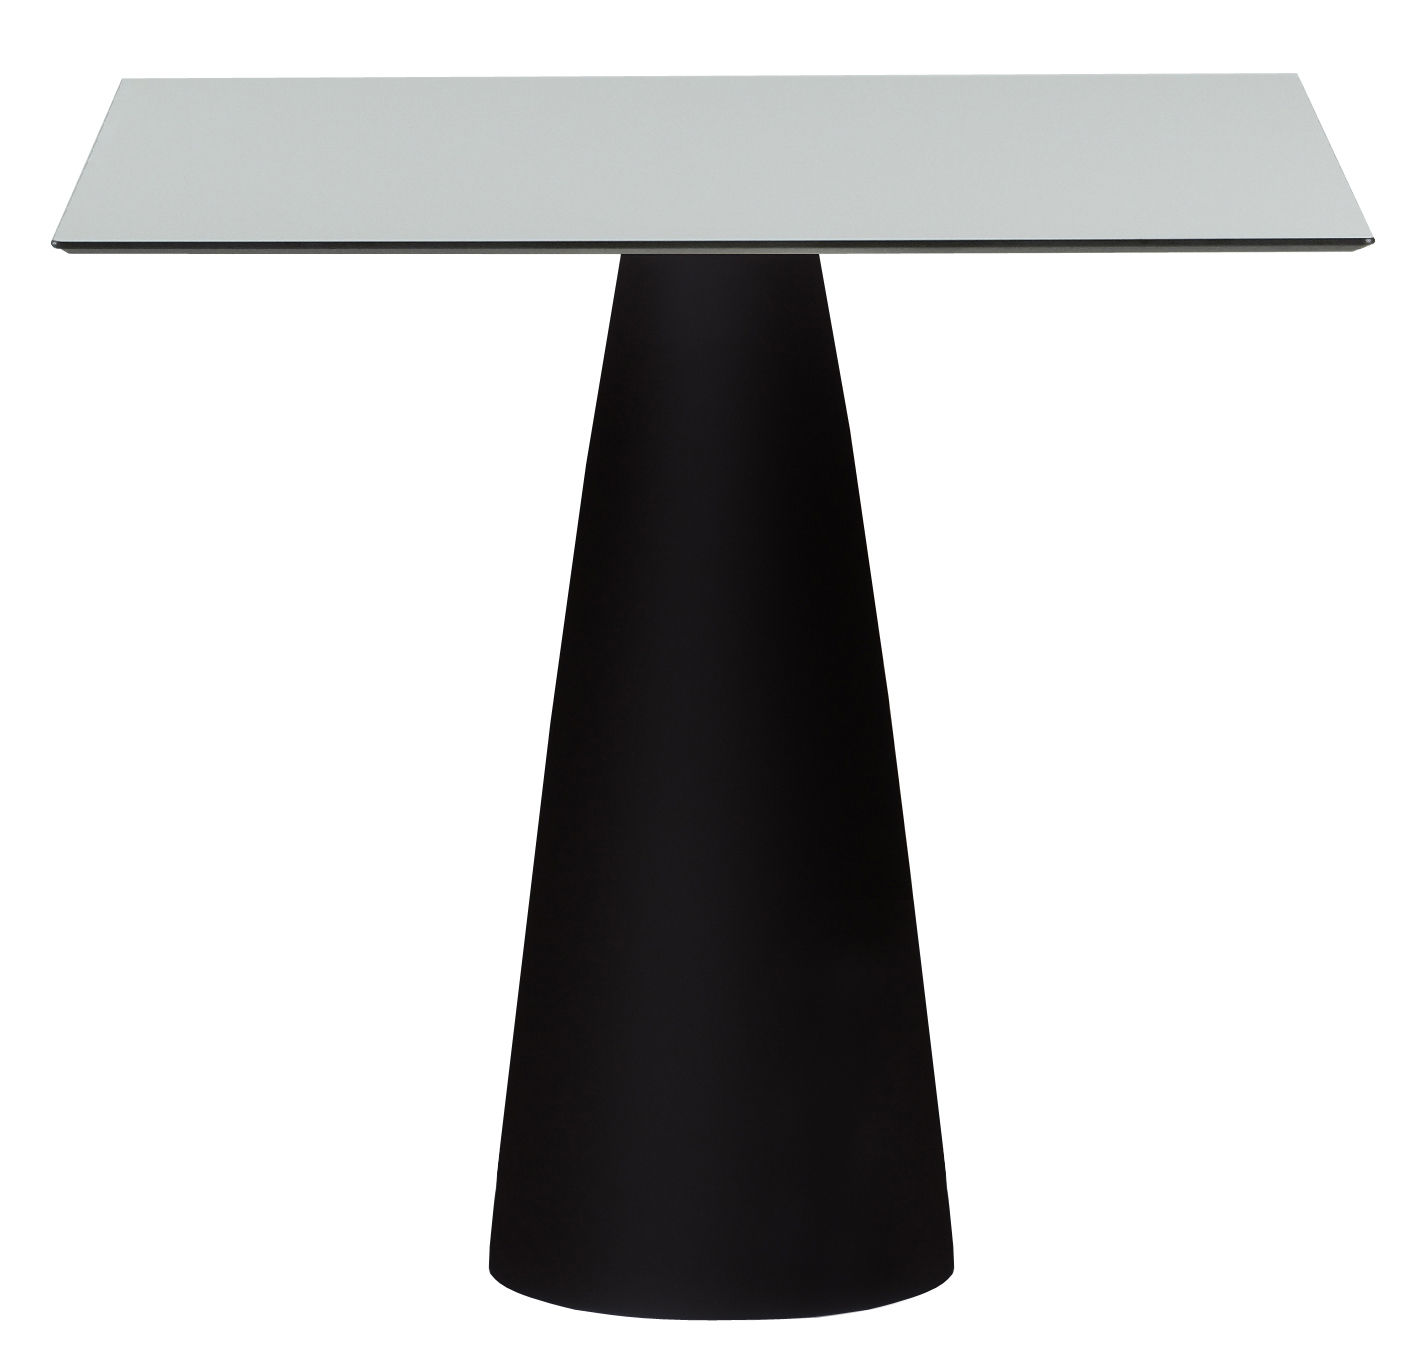 Outdoor - Garden Tables - Hoplà - H 72 cm Square table by Slide - White top / Black leg - Laminated HPL, Recyclable polyethylene